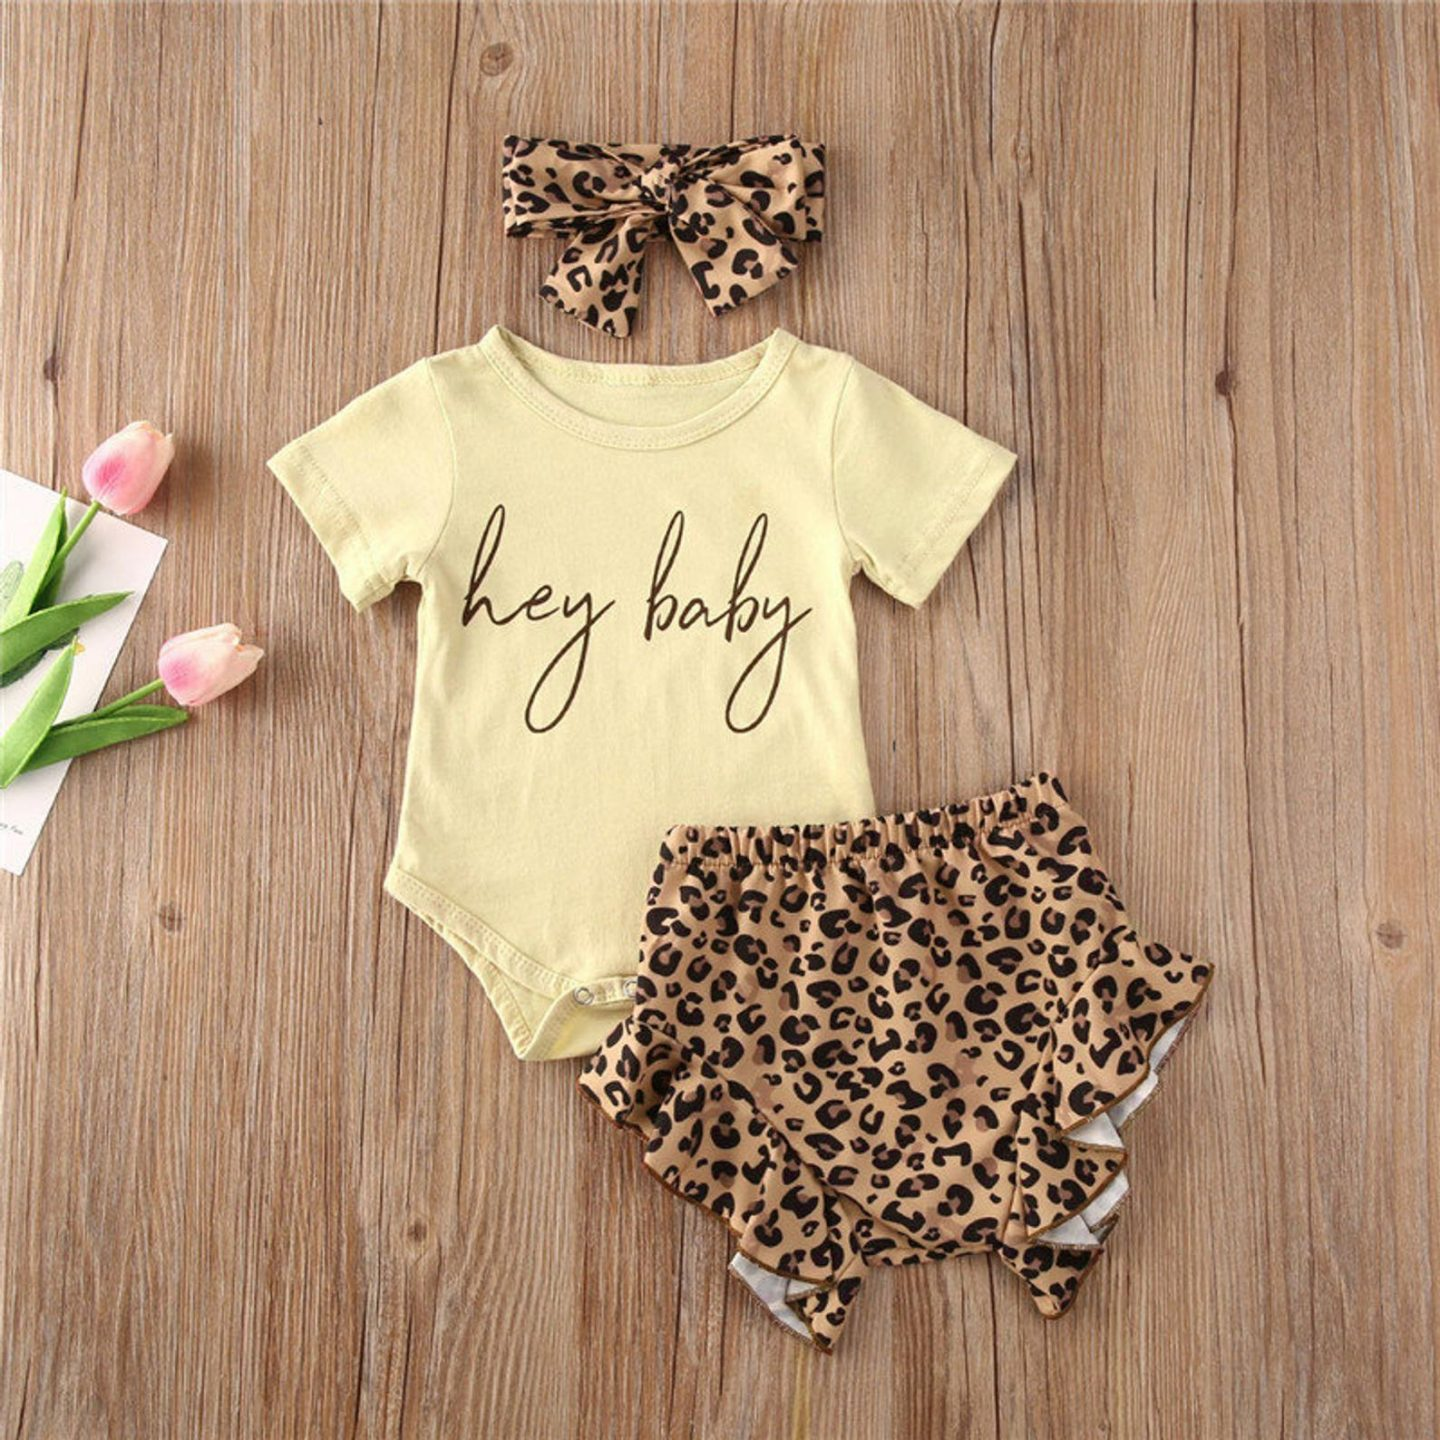 Cute baby clothes for babies with a leopard print